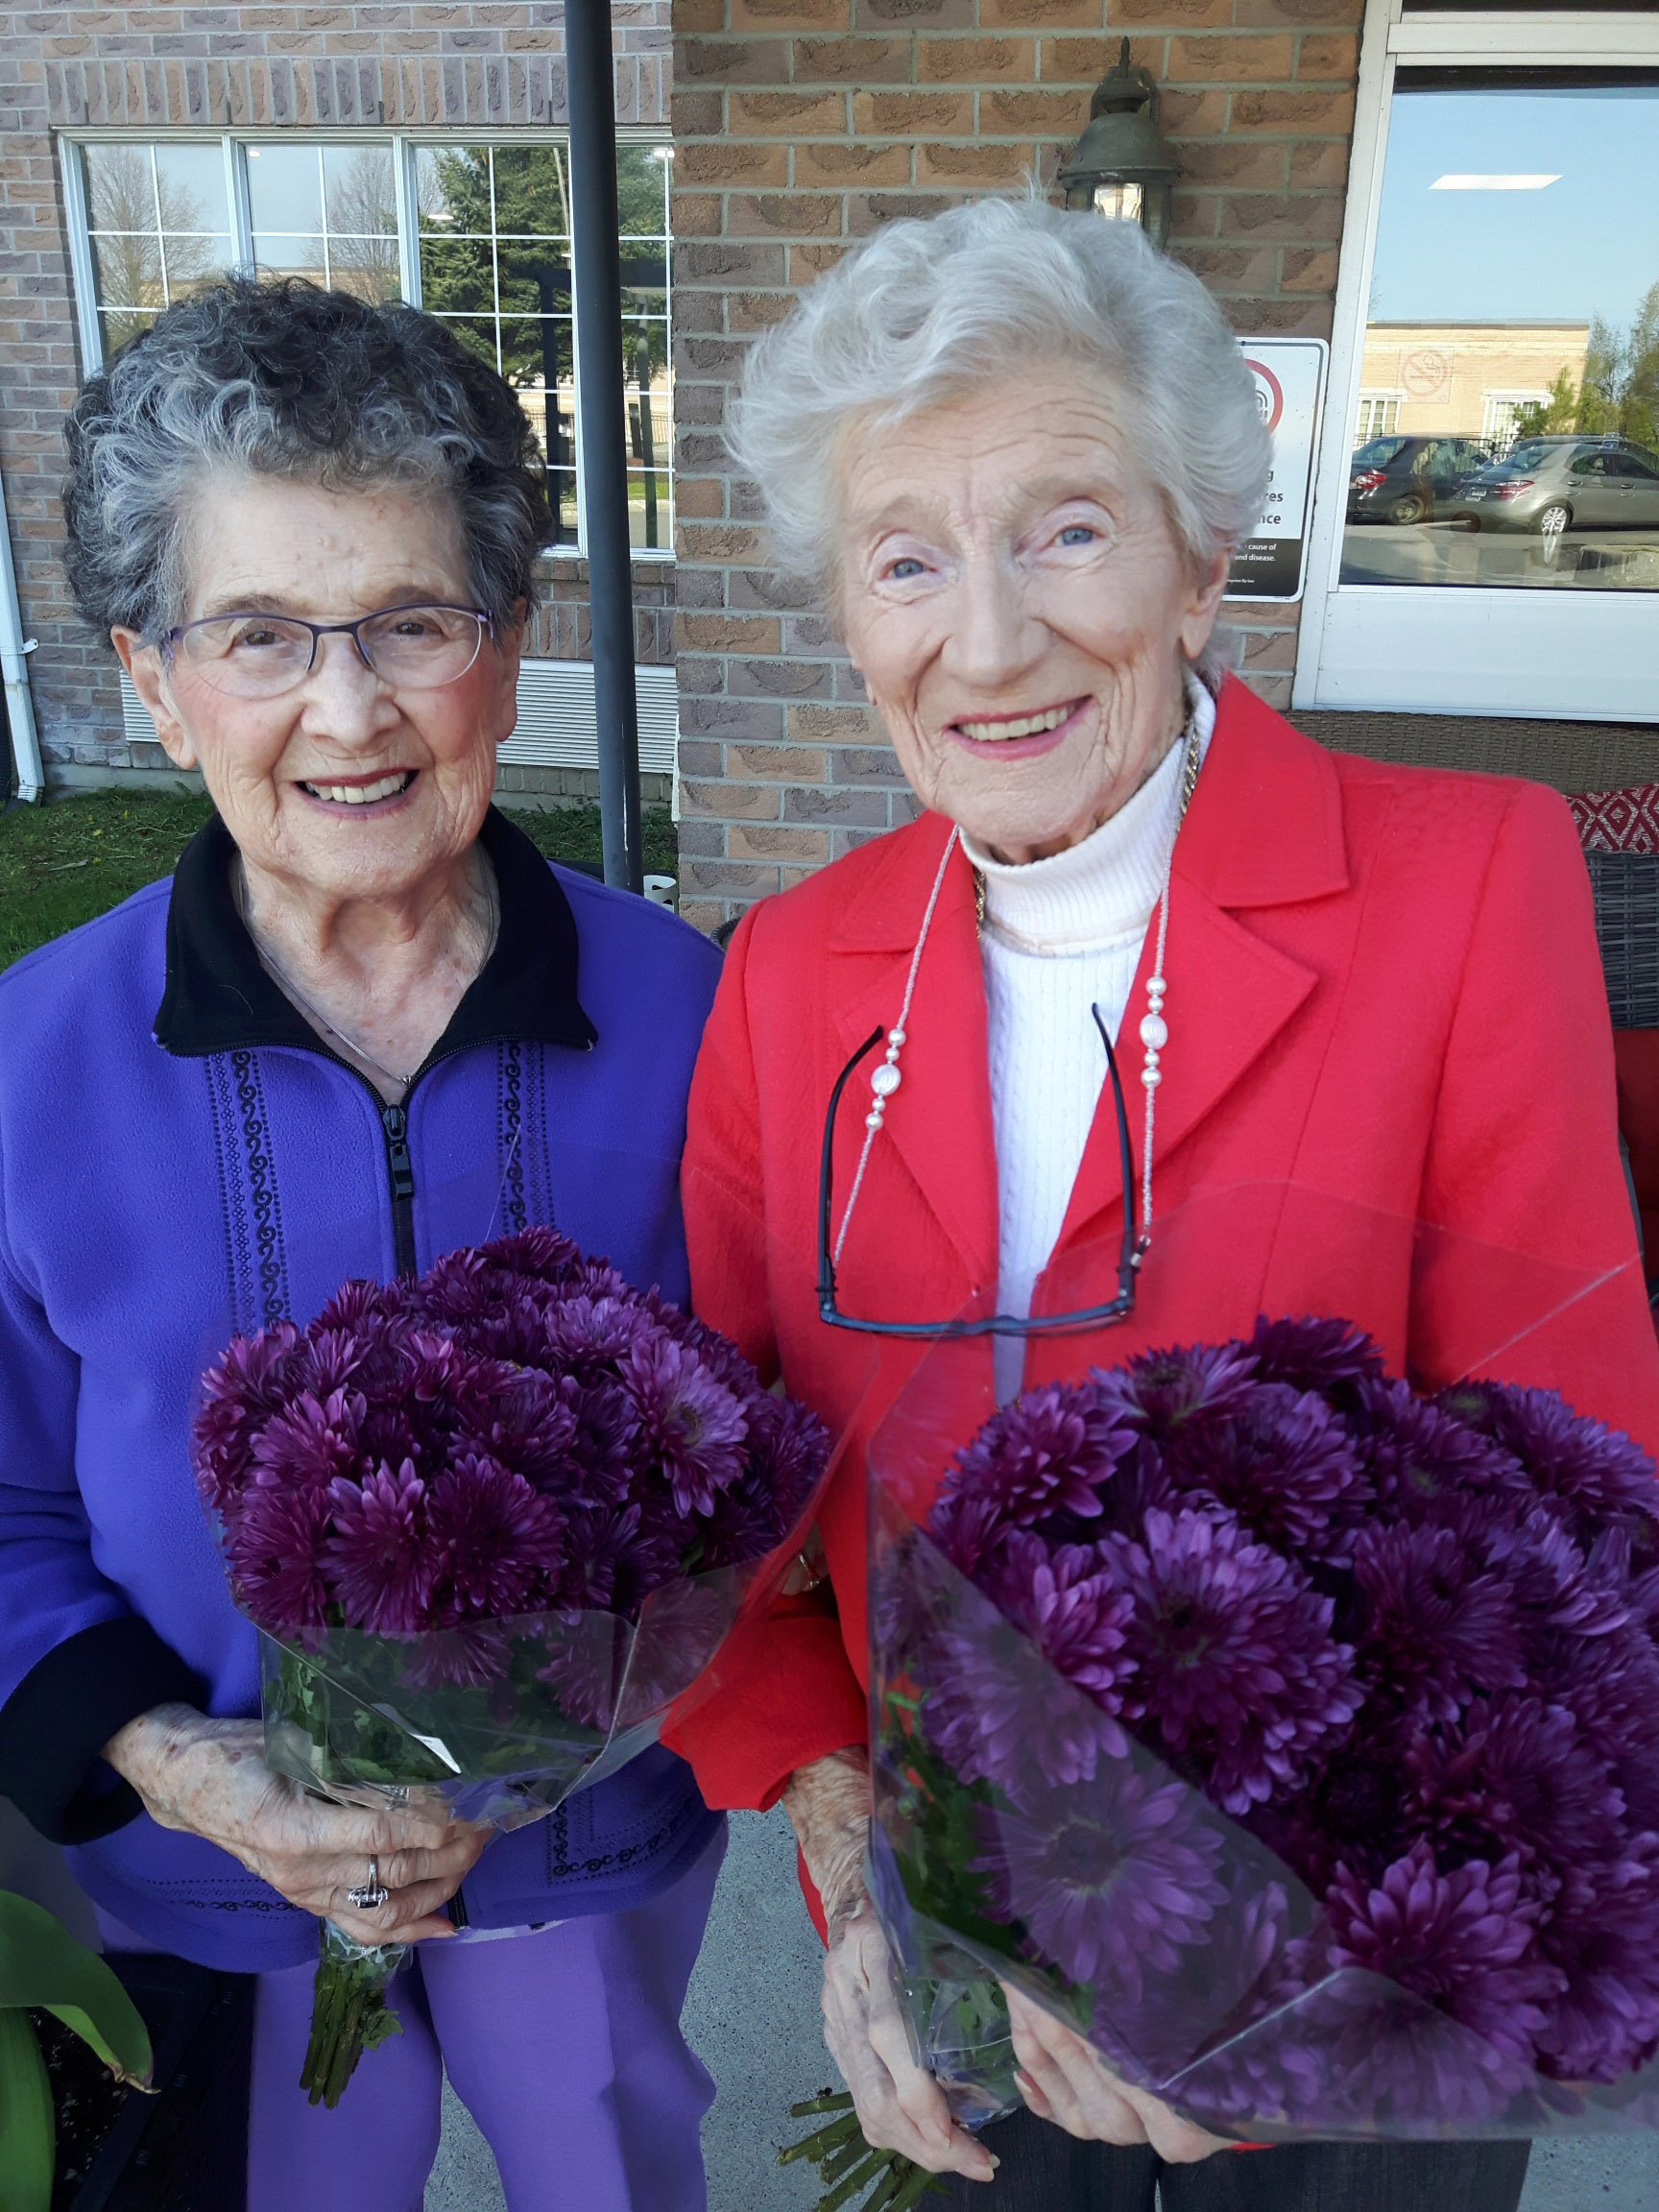 Two ladies holding bouquets of flowers.